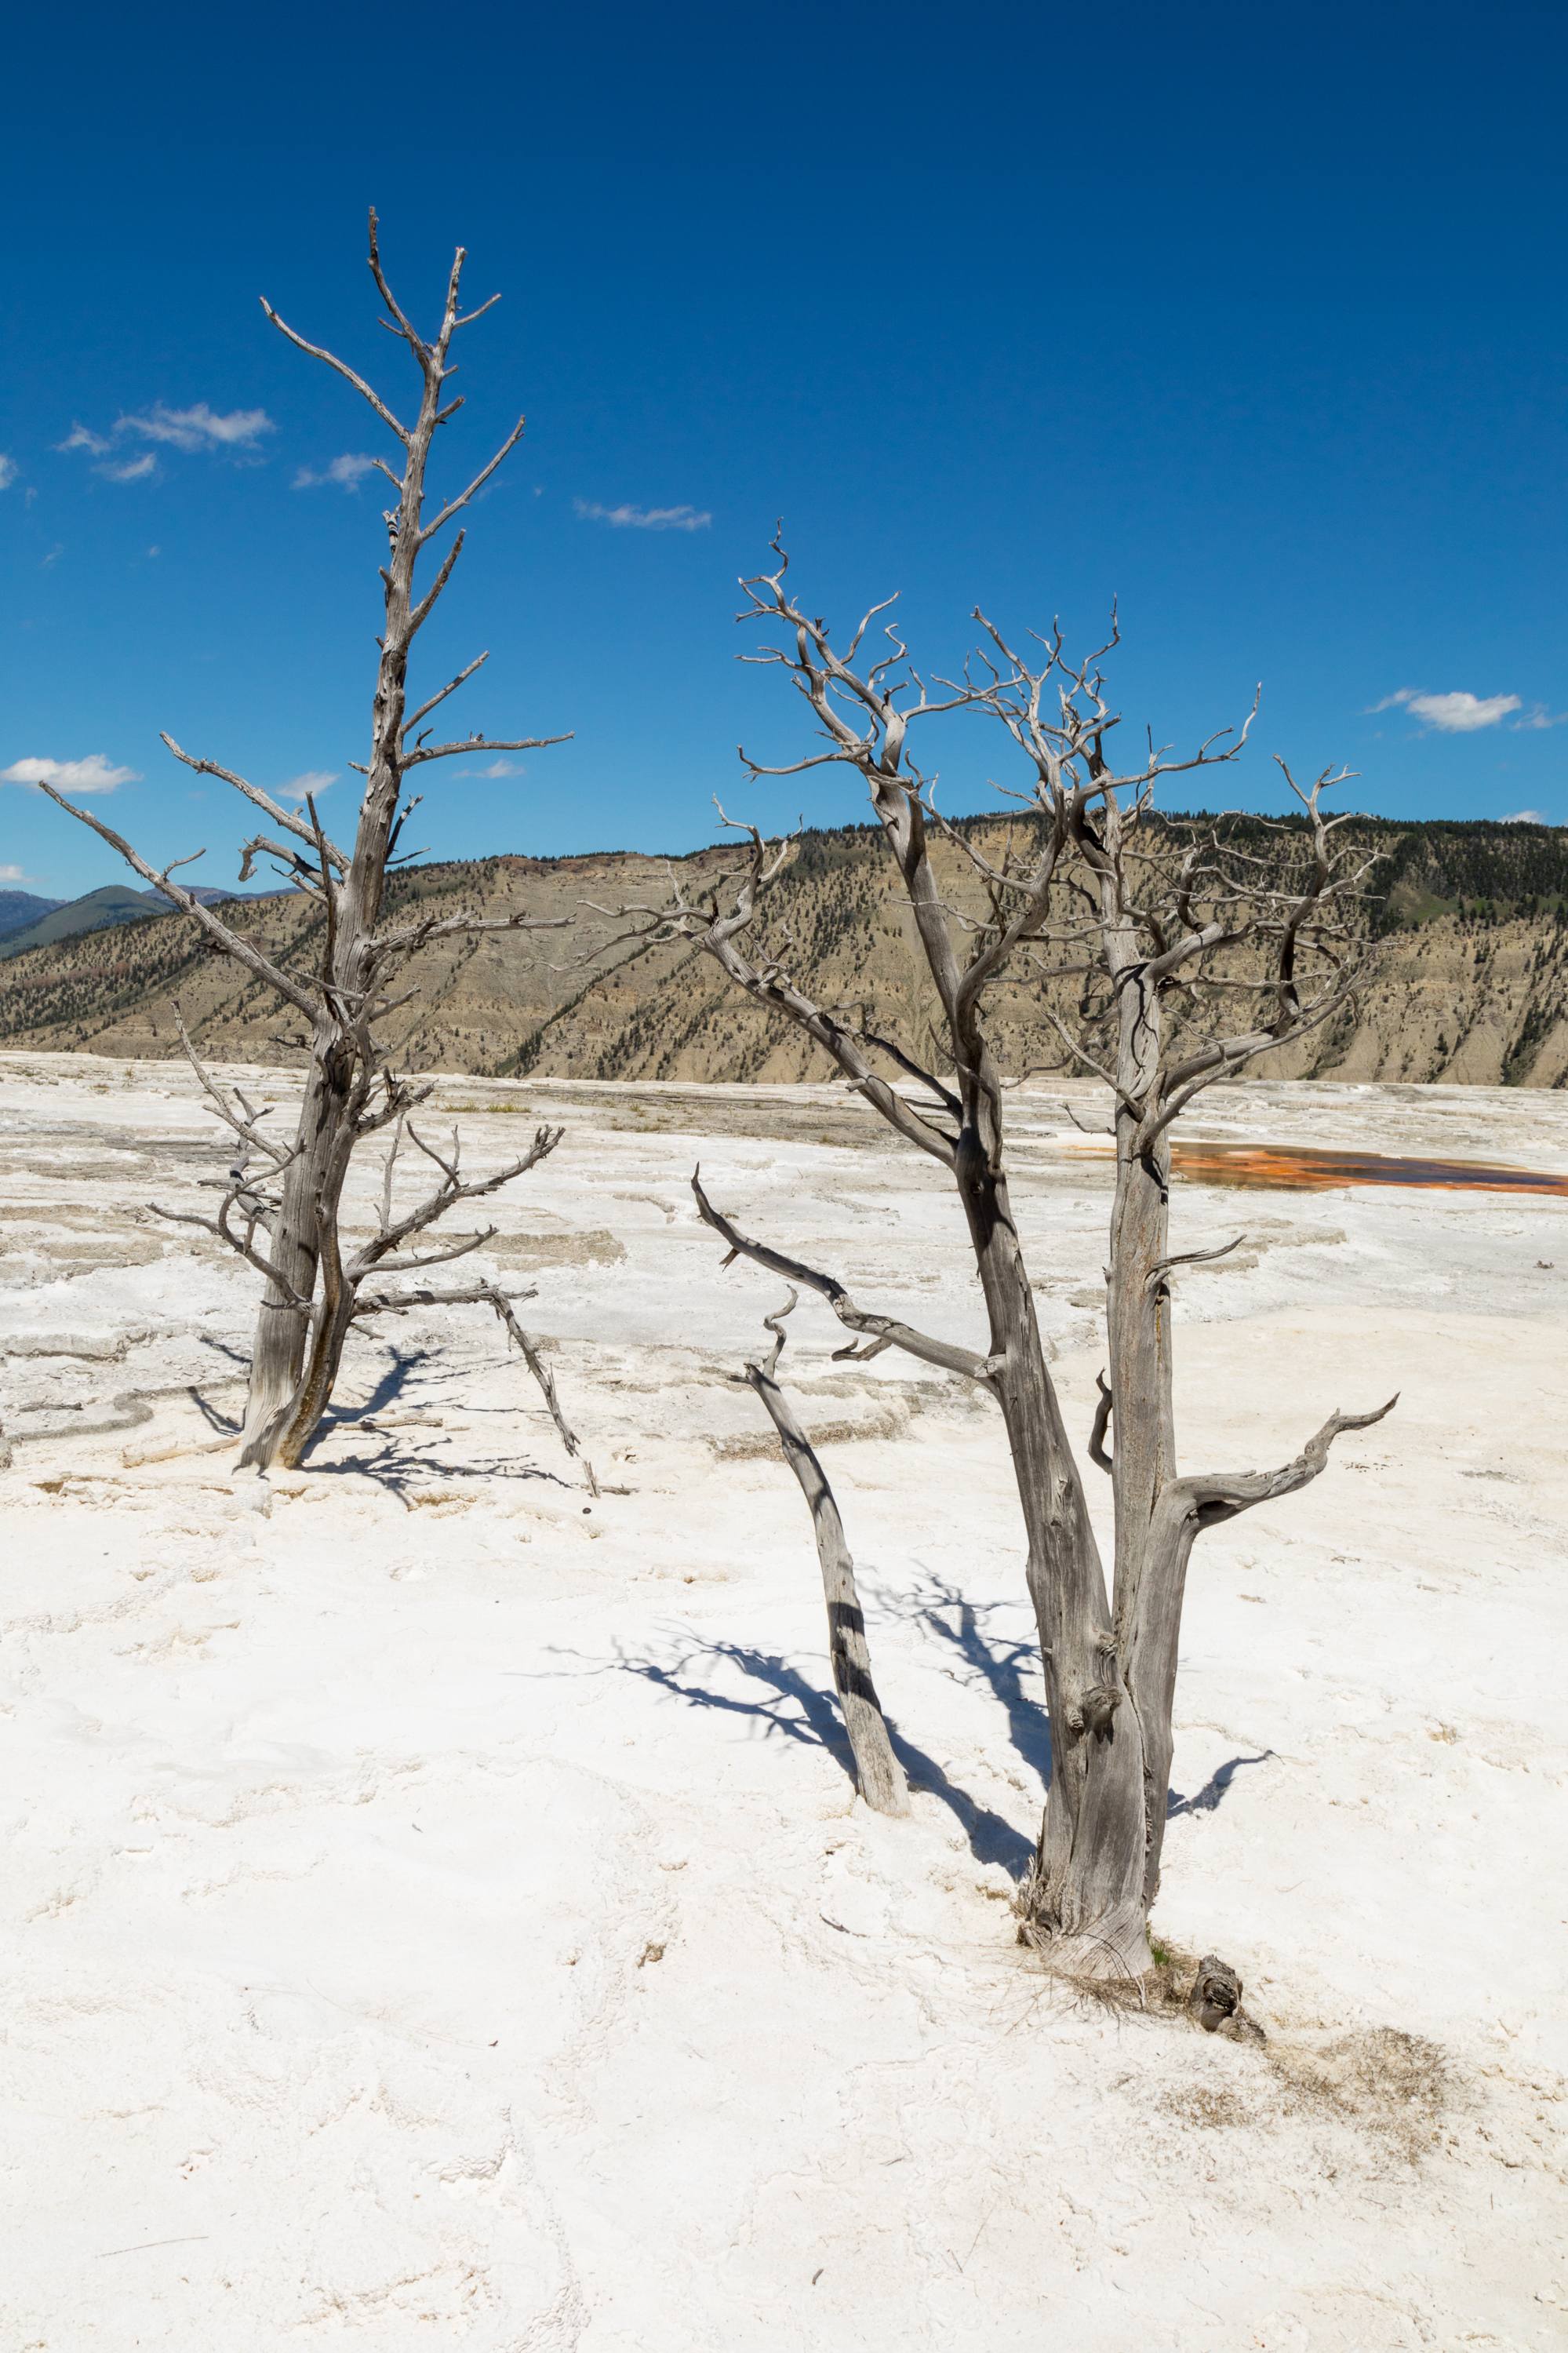 Mammoth Hot Springs, Yellowstone National Park, Image # 7384